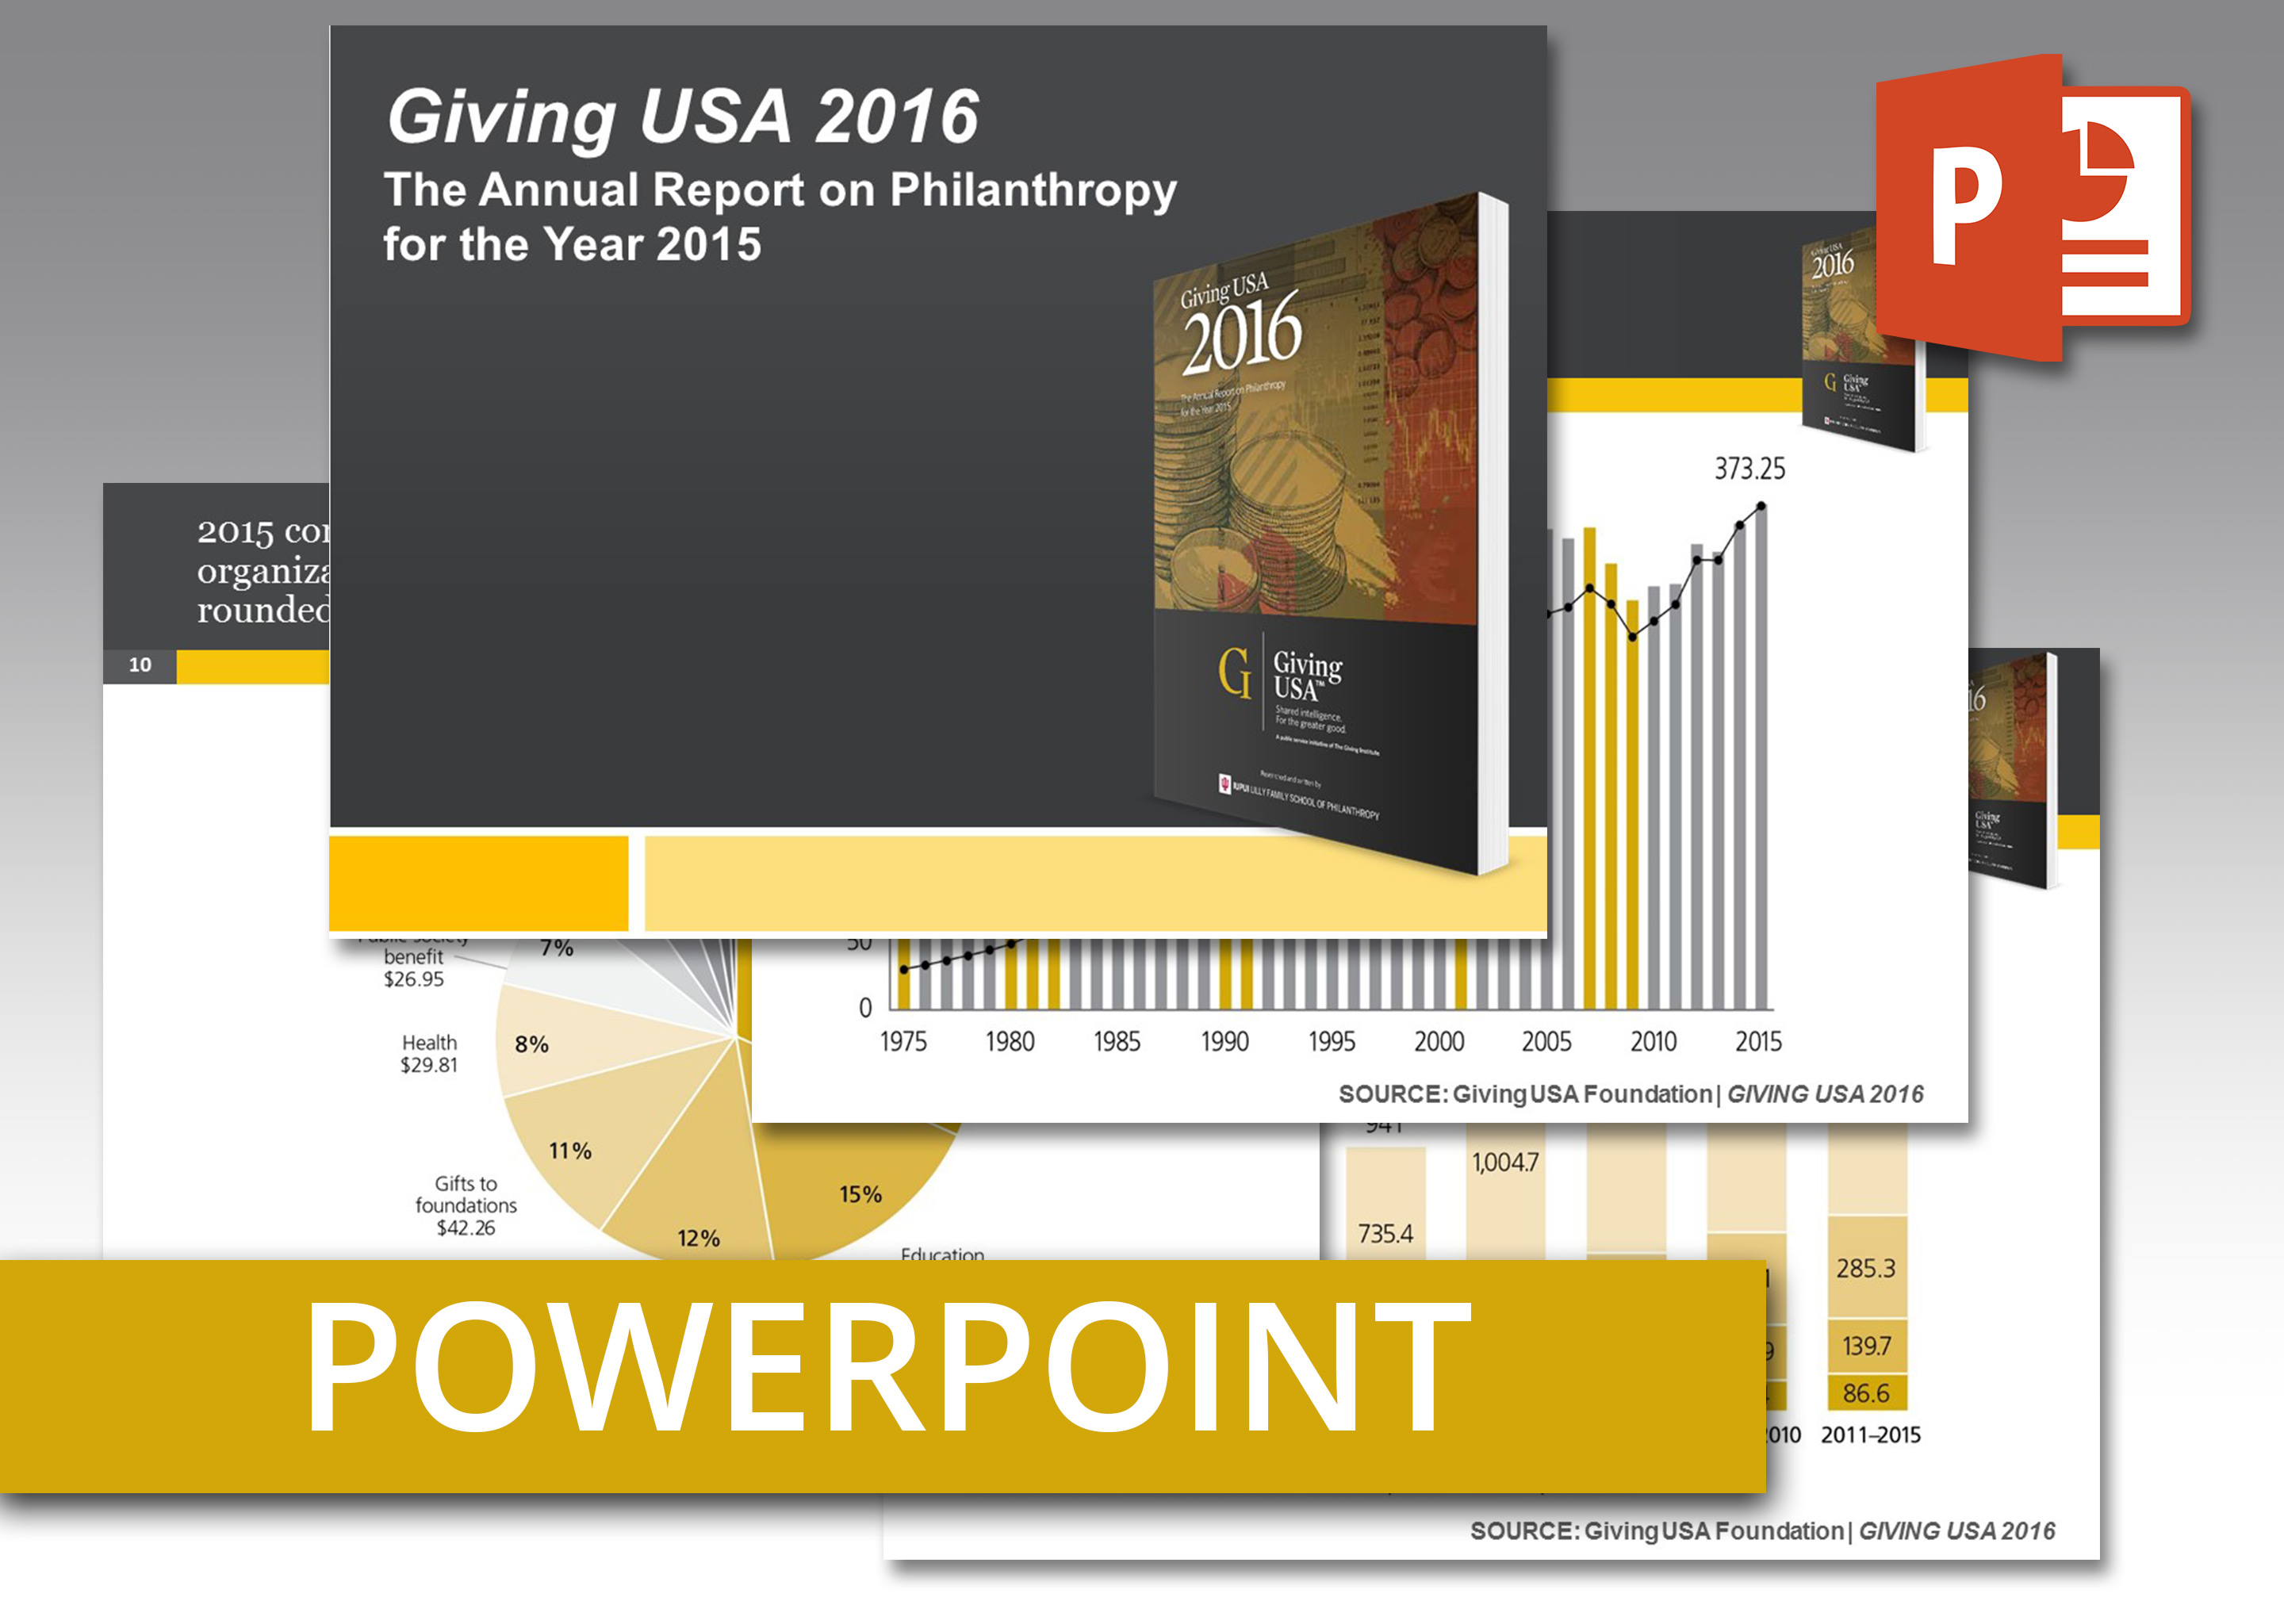 Coolmathgamesus  Unusual Giving Usa  Powerpoint An Easytouse Presentation Of Report  With Heavenly Giving Usa  Powerpoint An Easytouse Presentation Of Report Findings Including Talking Points With Lovely Download Powerpoint Free Trial Also How Do You Insert A Youtube Video Into Powerpoint In Addition Baseball Powerpoint And Powerpoint Equivalent For Mac As Well As Ebola Powerpoint Additionally Pdf To Powerpoint Online From Givingusaorg With Coolmathgamesus  Heavenly Giving Usa  Powerpoint An Easytouse Presentation Of Report  With Lovely Giving Usa  Powerpoint An Easytouse Presentation Of Report Findings Including Talking Points And Unusual Download Powerpoint Free Trial Also How Do You Insert A Youtube Video Into Powerpoint In Addition Baseball Powerpoint From Givingusaorg